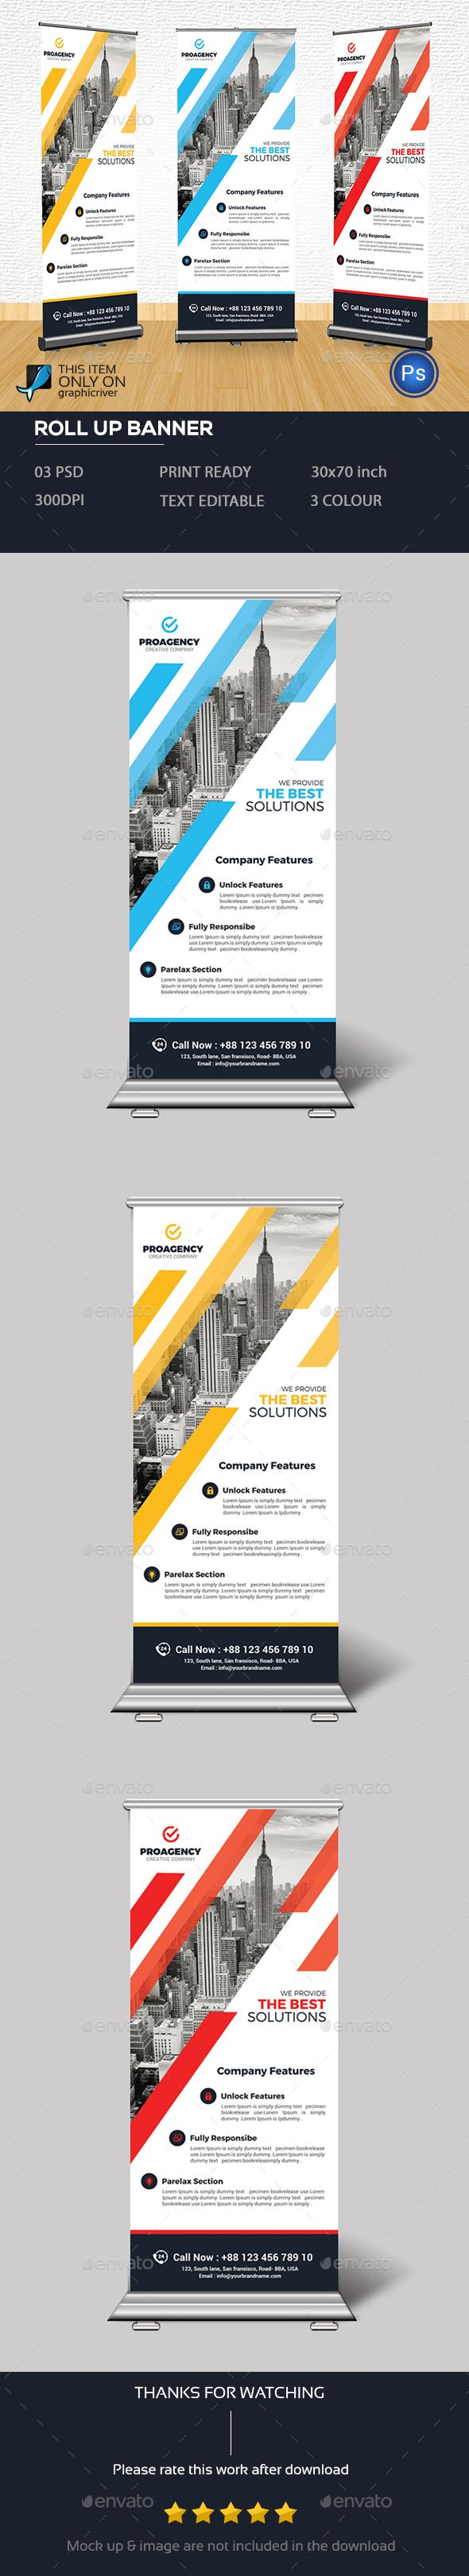 Corporate Roll-Up Banner Template PSD. Download here: http://graphicriver.net/item/corporate-roll-up-banner/16326615?ref=ksioks